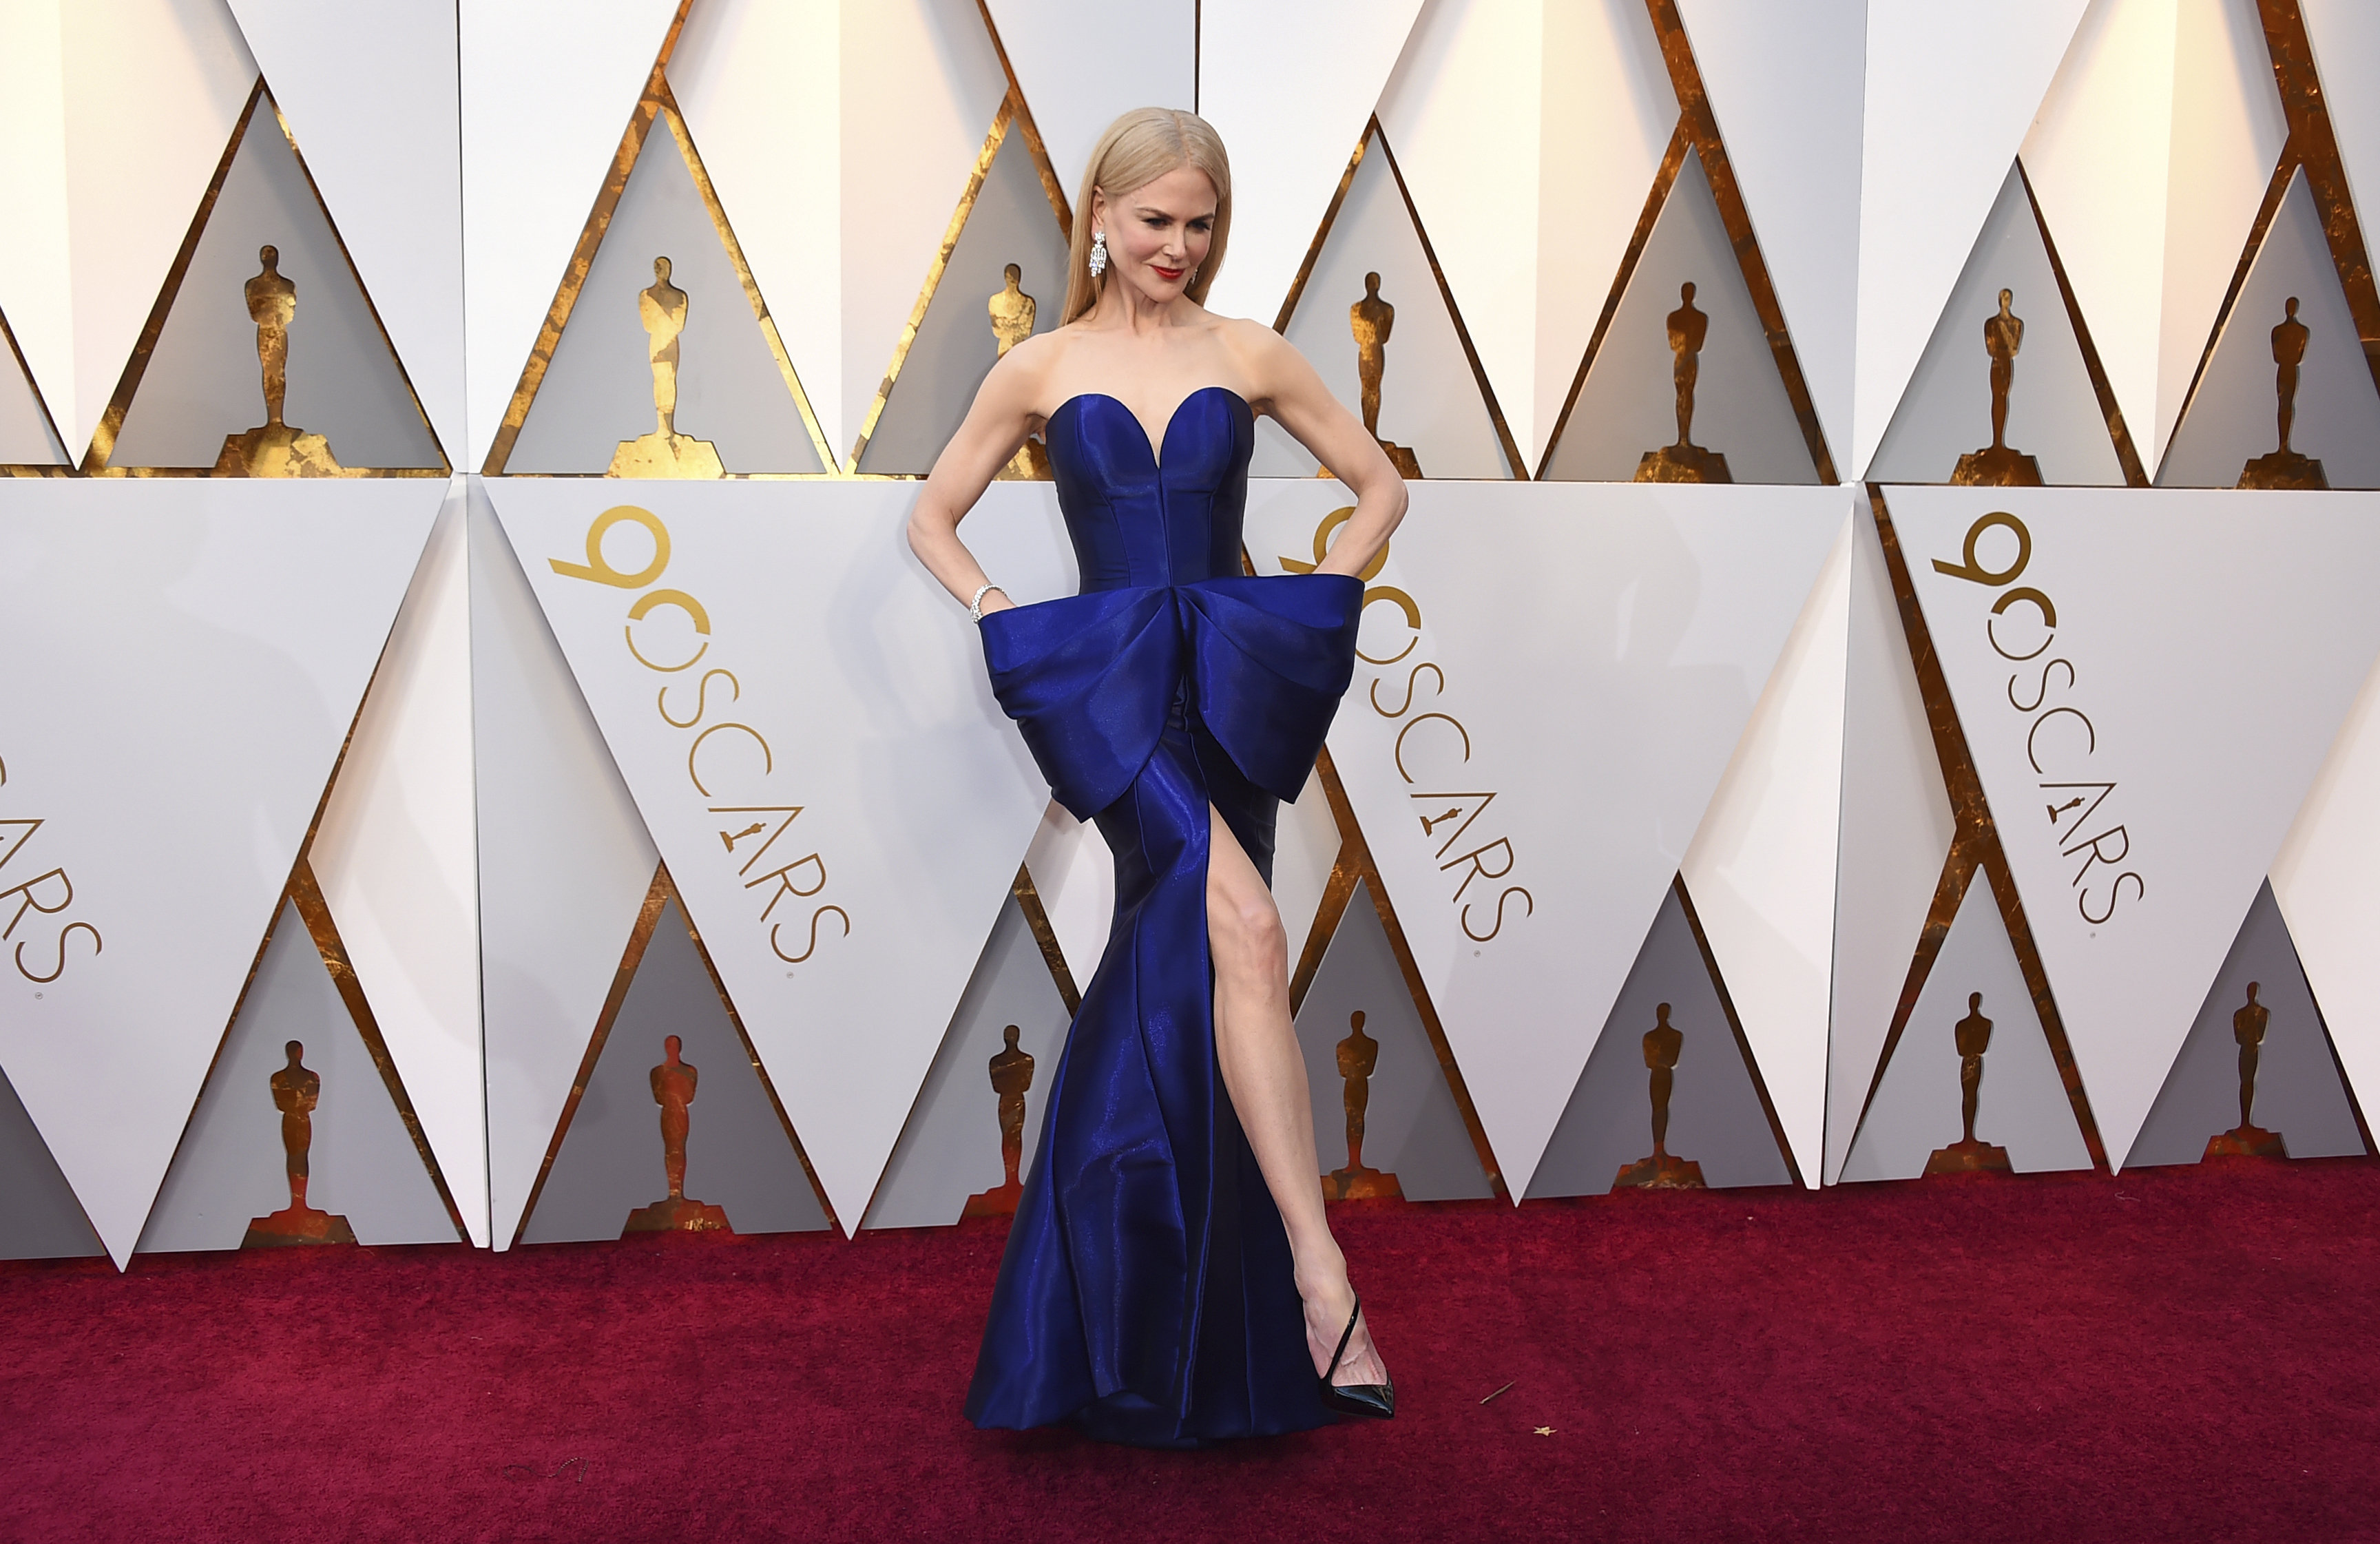 Nicole Kidman arrives at the Oscars on Sunday, March 4, 2018, at the Dolby Theatre in Los Angeles